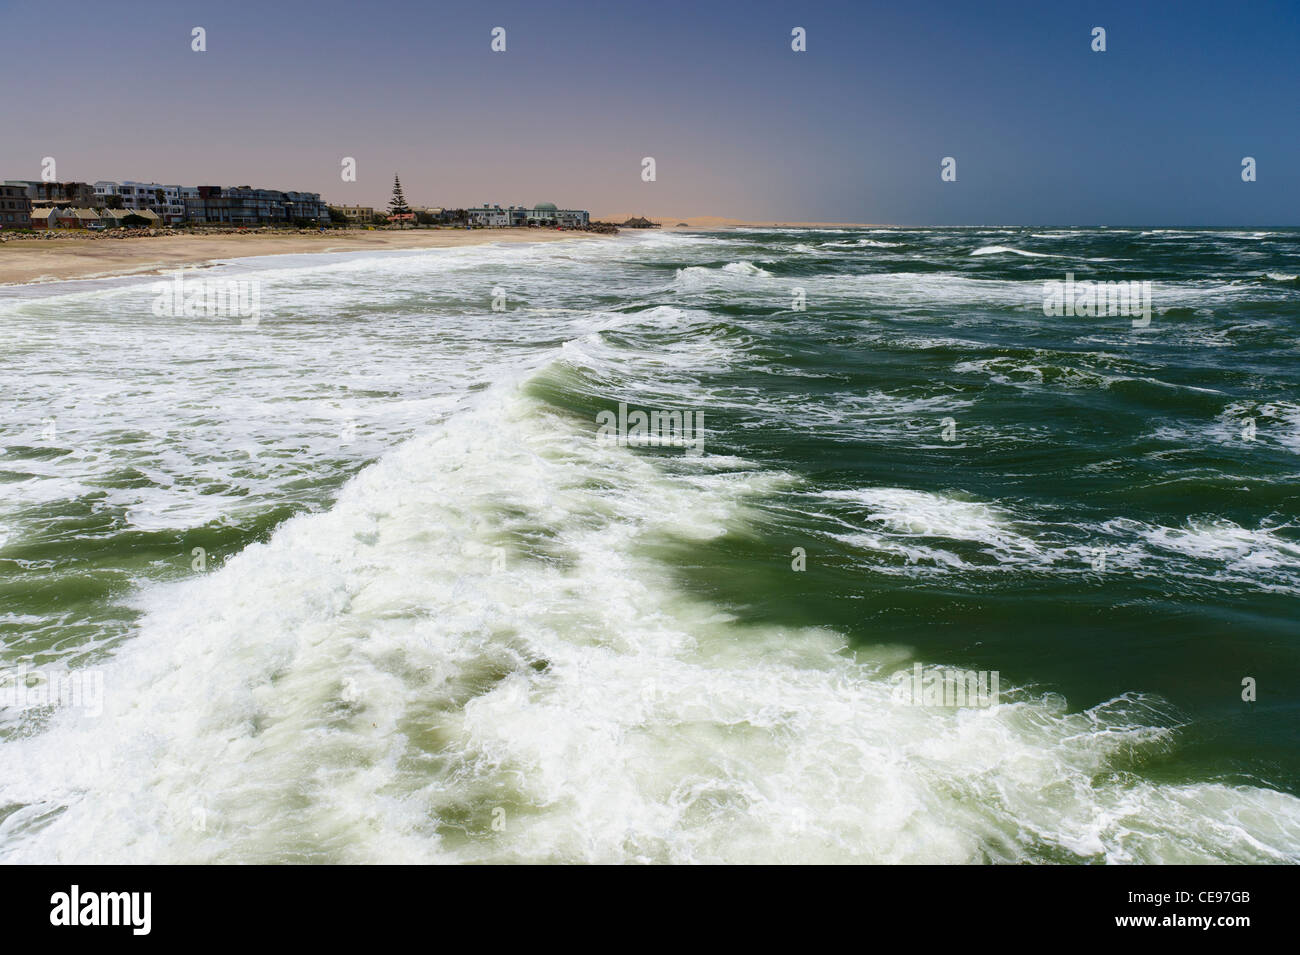 The coast of Swakopmund seen from 'the jetty'. Namibia - Stock Image